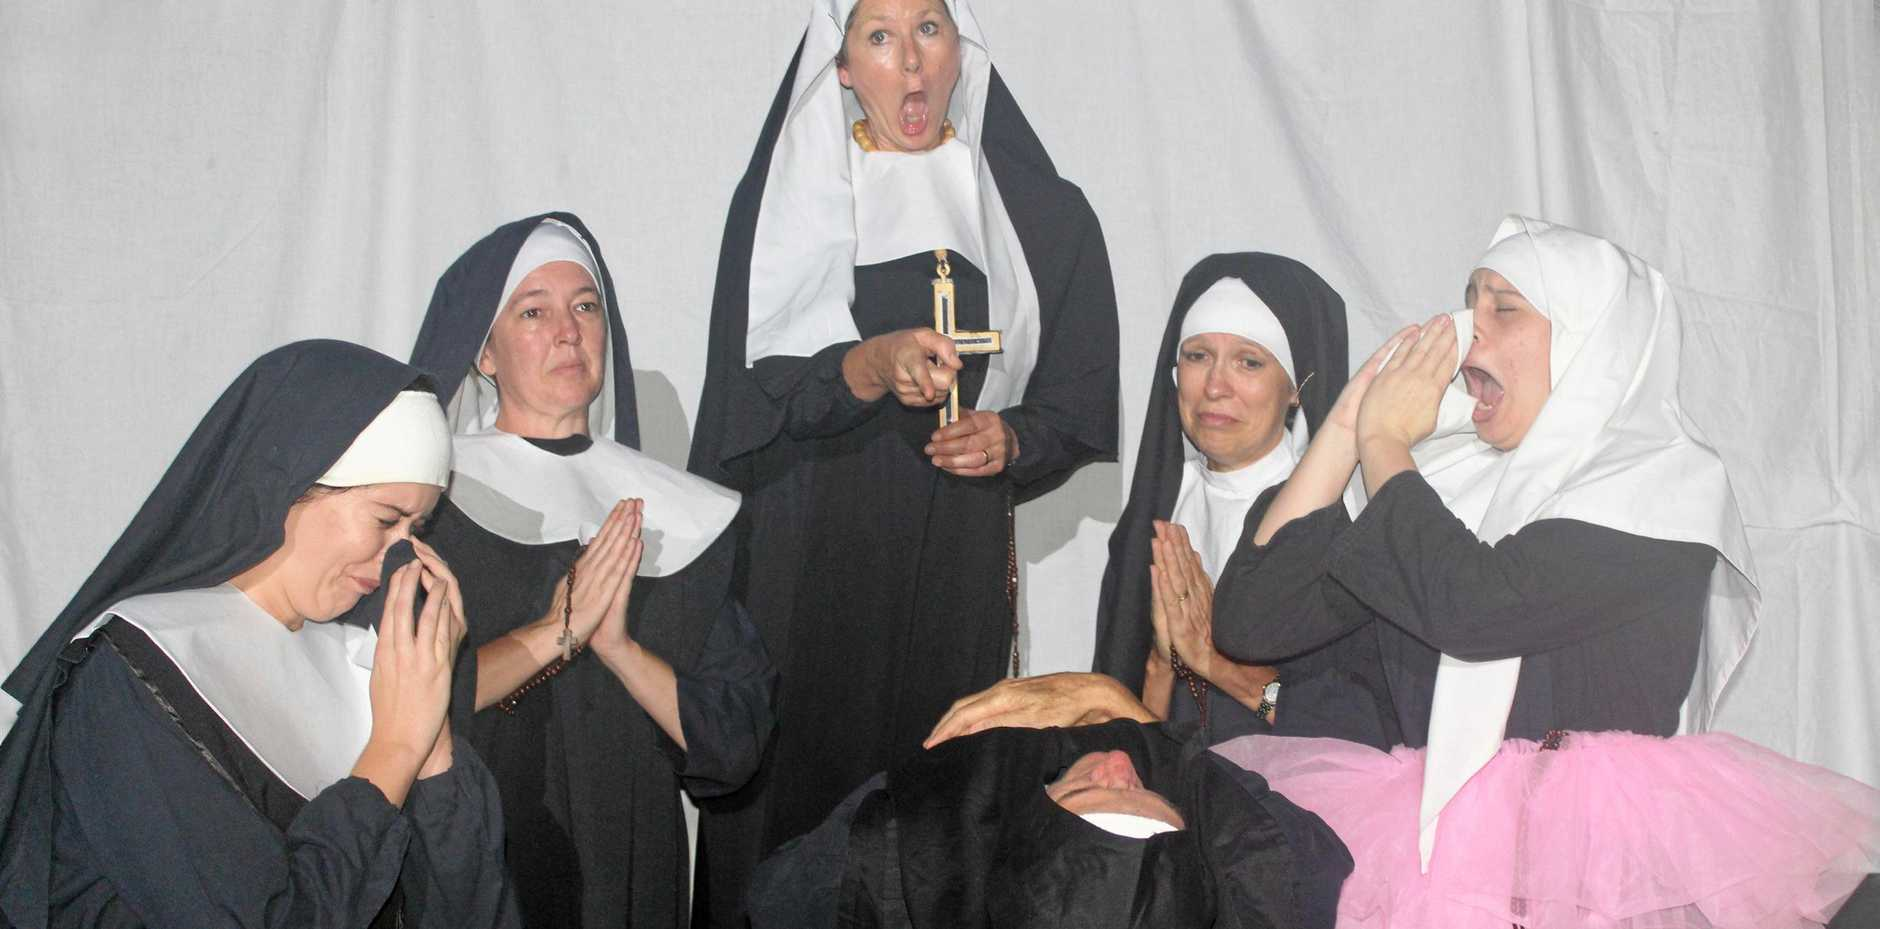 The cast of Nunsense will be treading the boards at the Criterion Theatre this weekend and next.